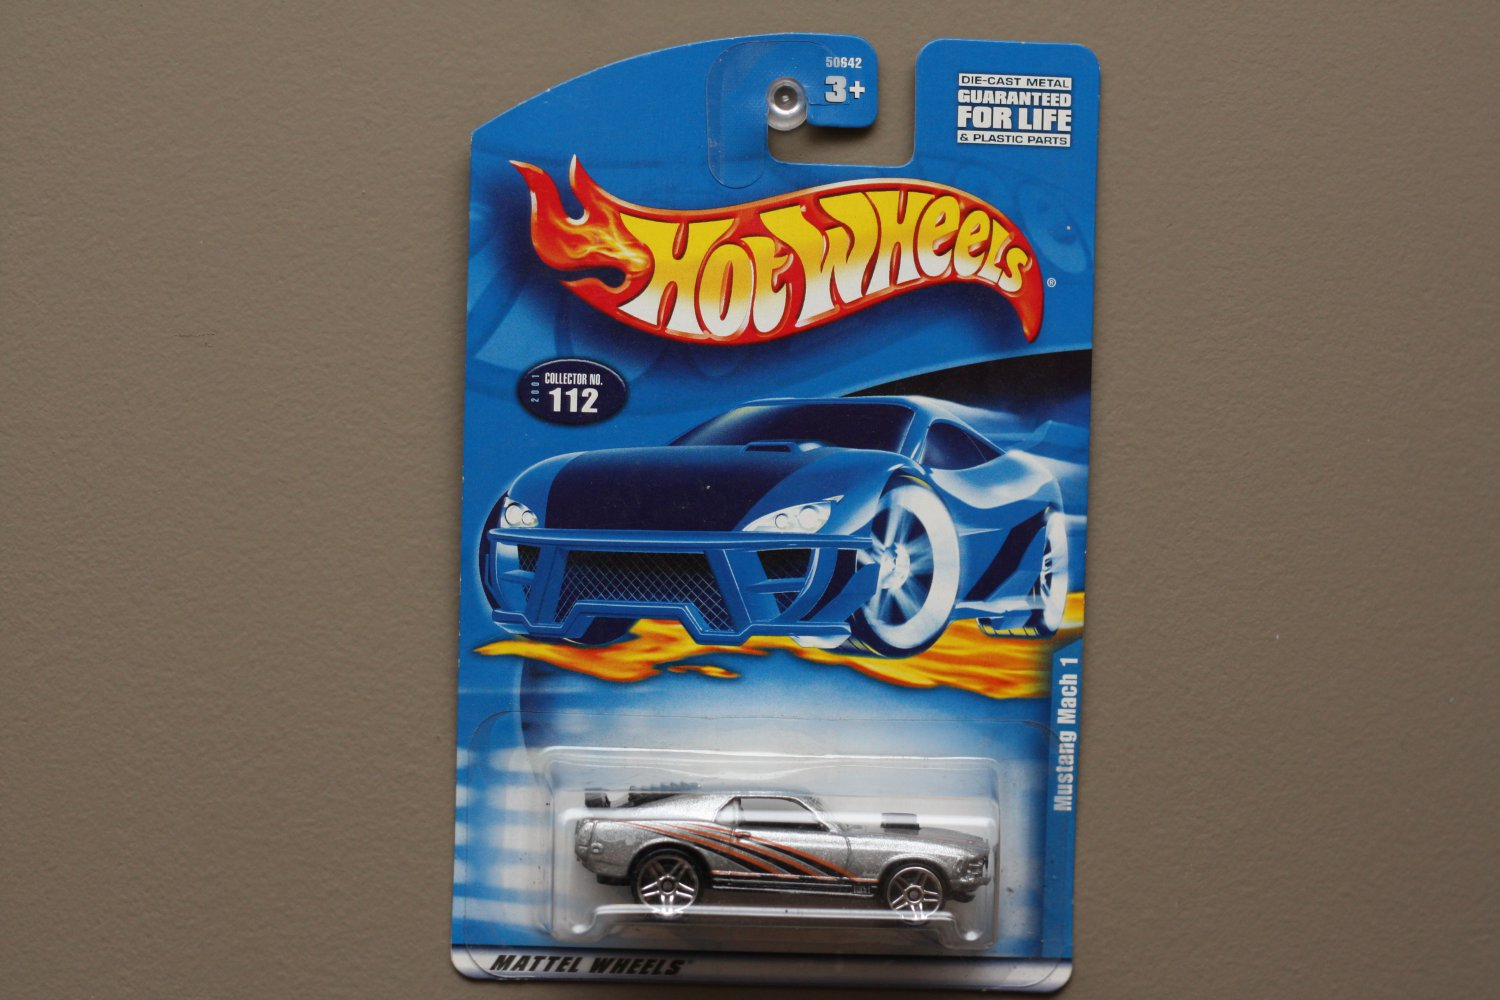 Hot Wheels 2001 Collector Series '70 Mustang Mach 1 (silver)